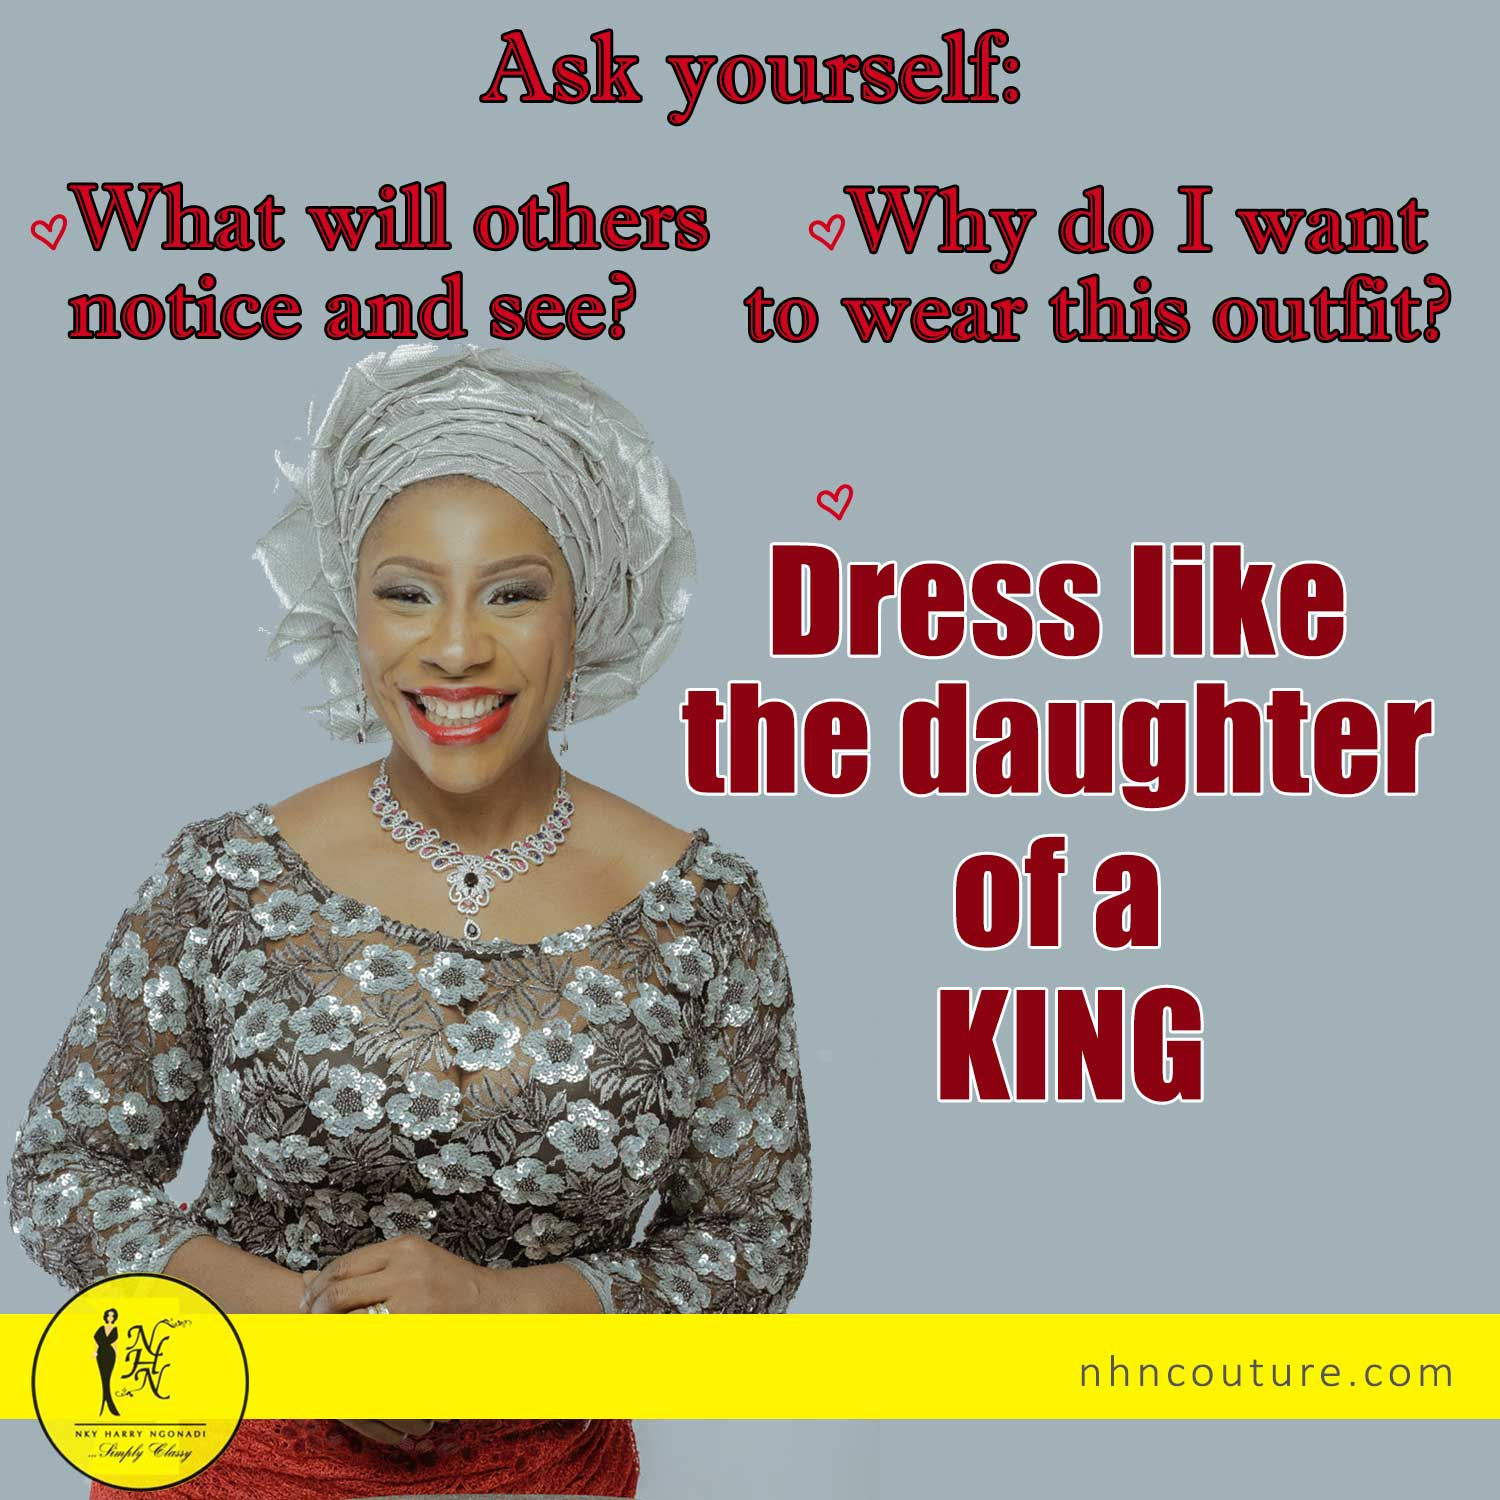 Dress-like-the-daughter-of-a-King-18012015-3